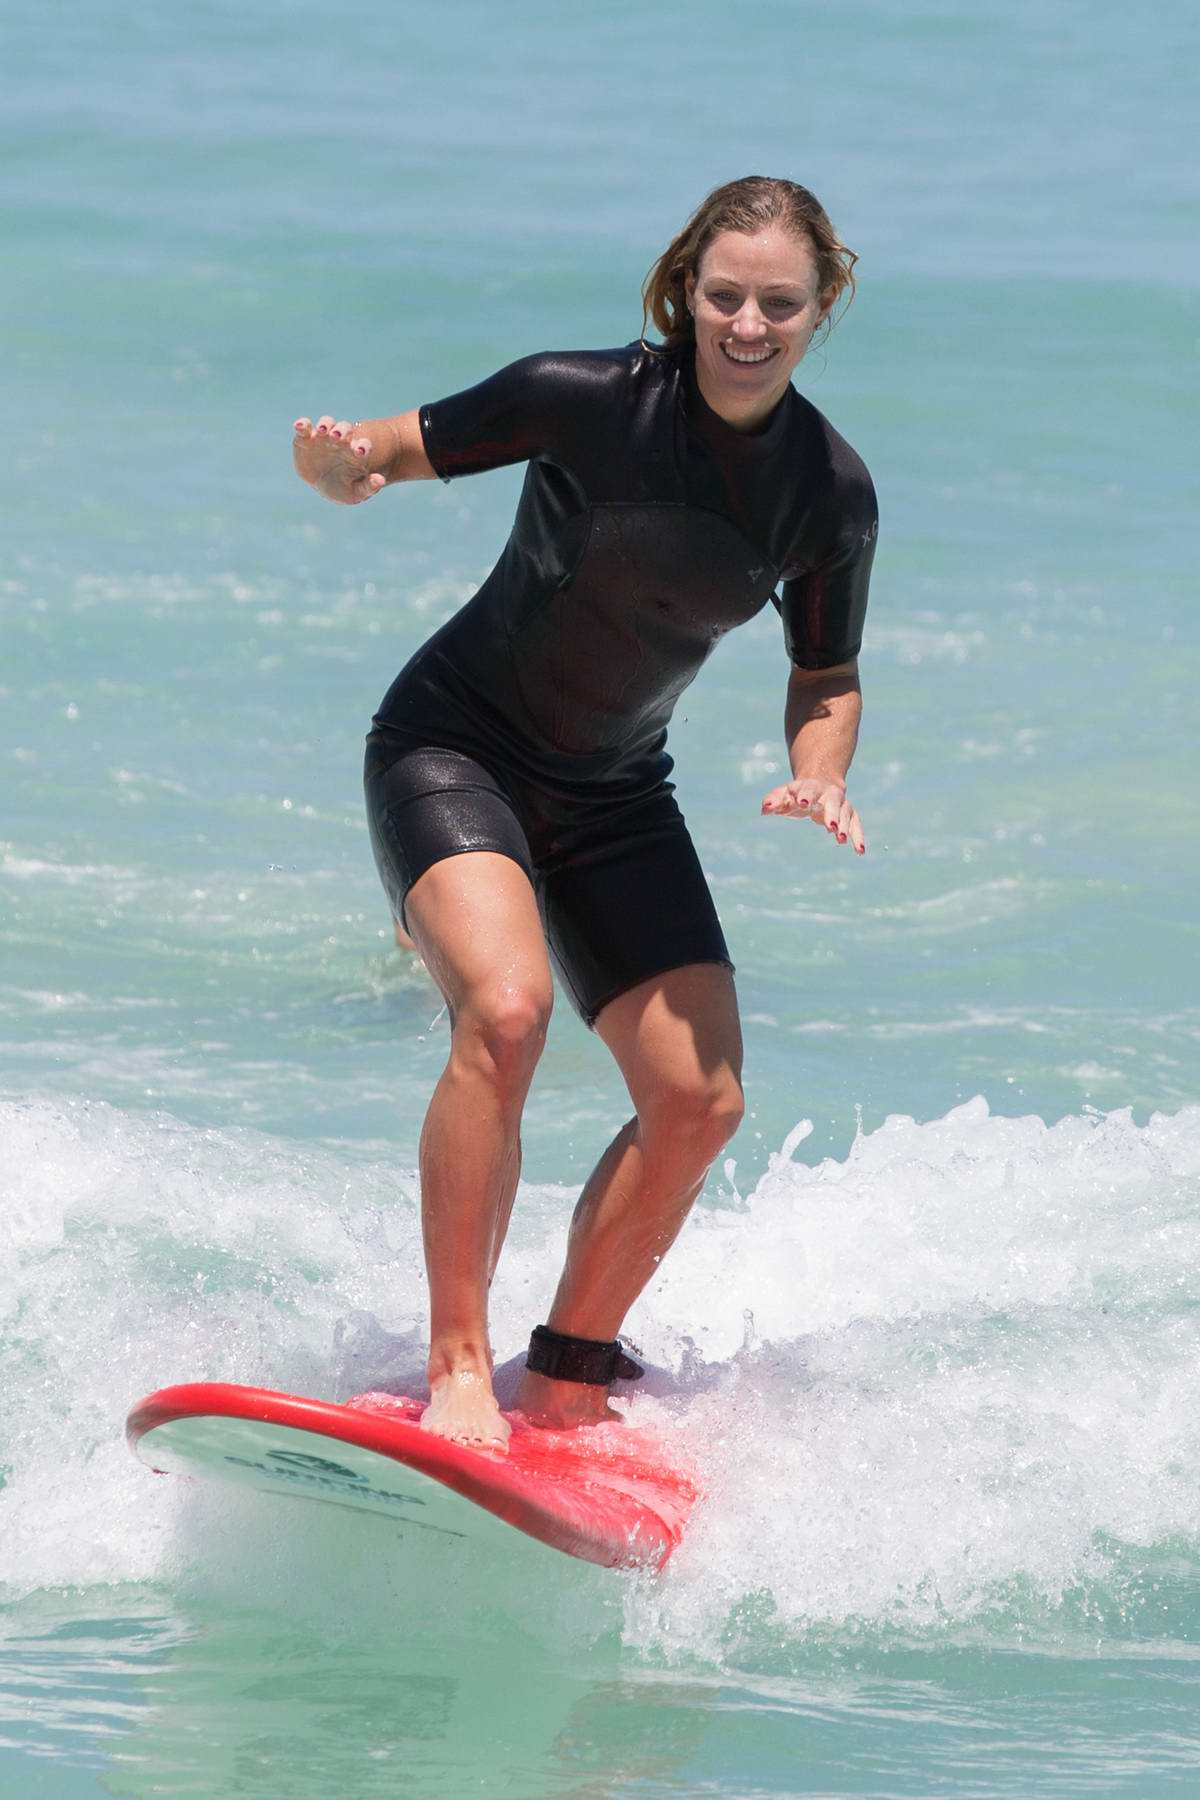 Angelique Kerber appears to be taking some surfing lesson at Trigg beach in Perth, Australia